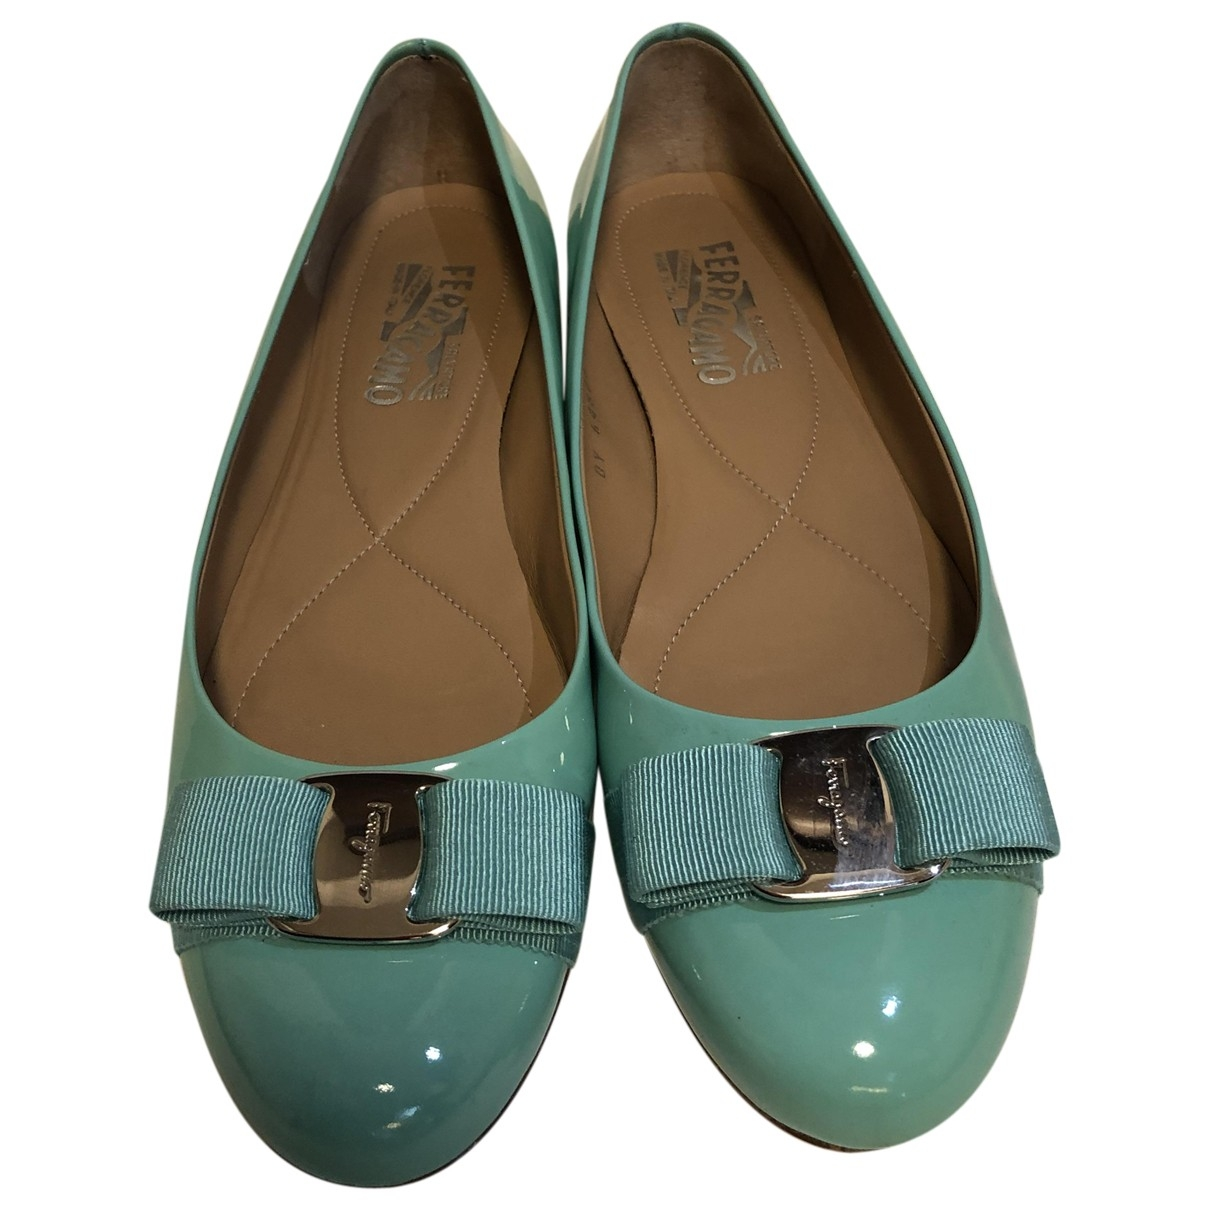 Salvatore Ferragamo \N Ballerinas in  Tuerkis Lackleder